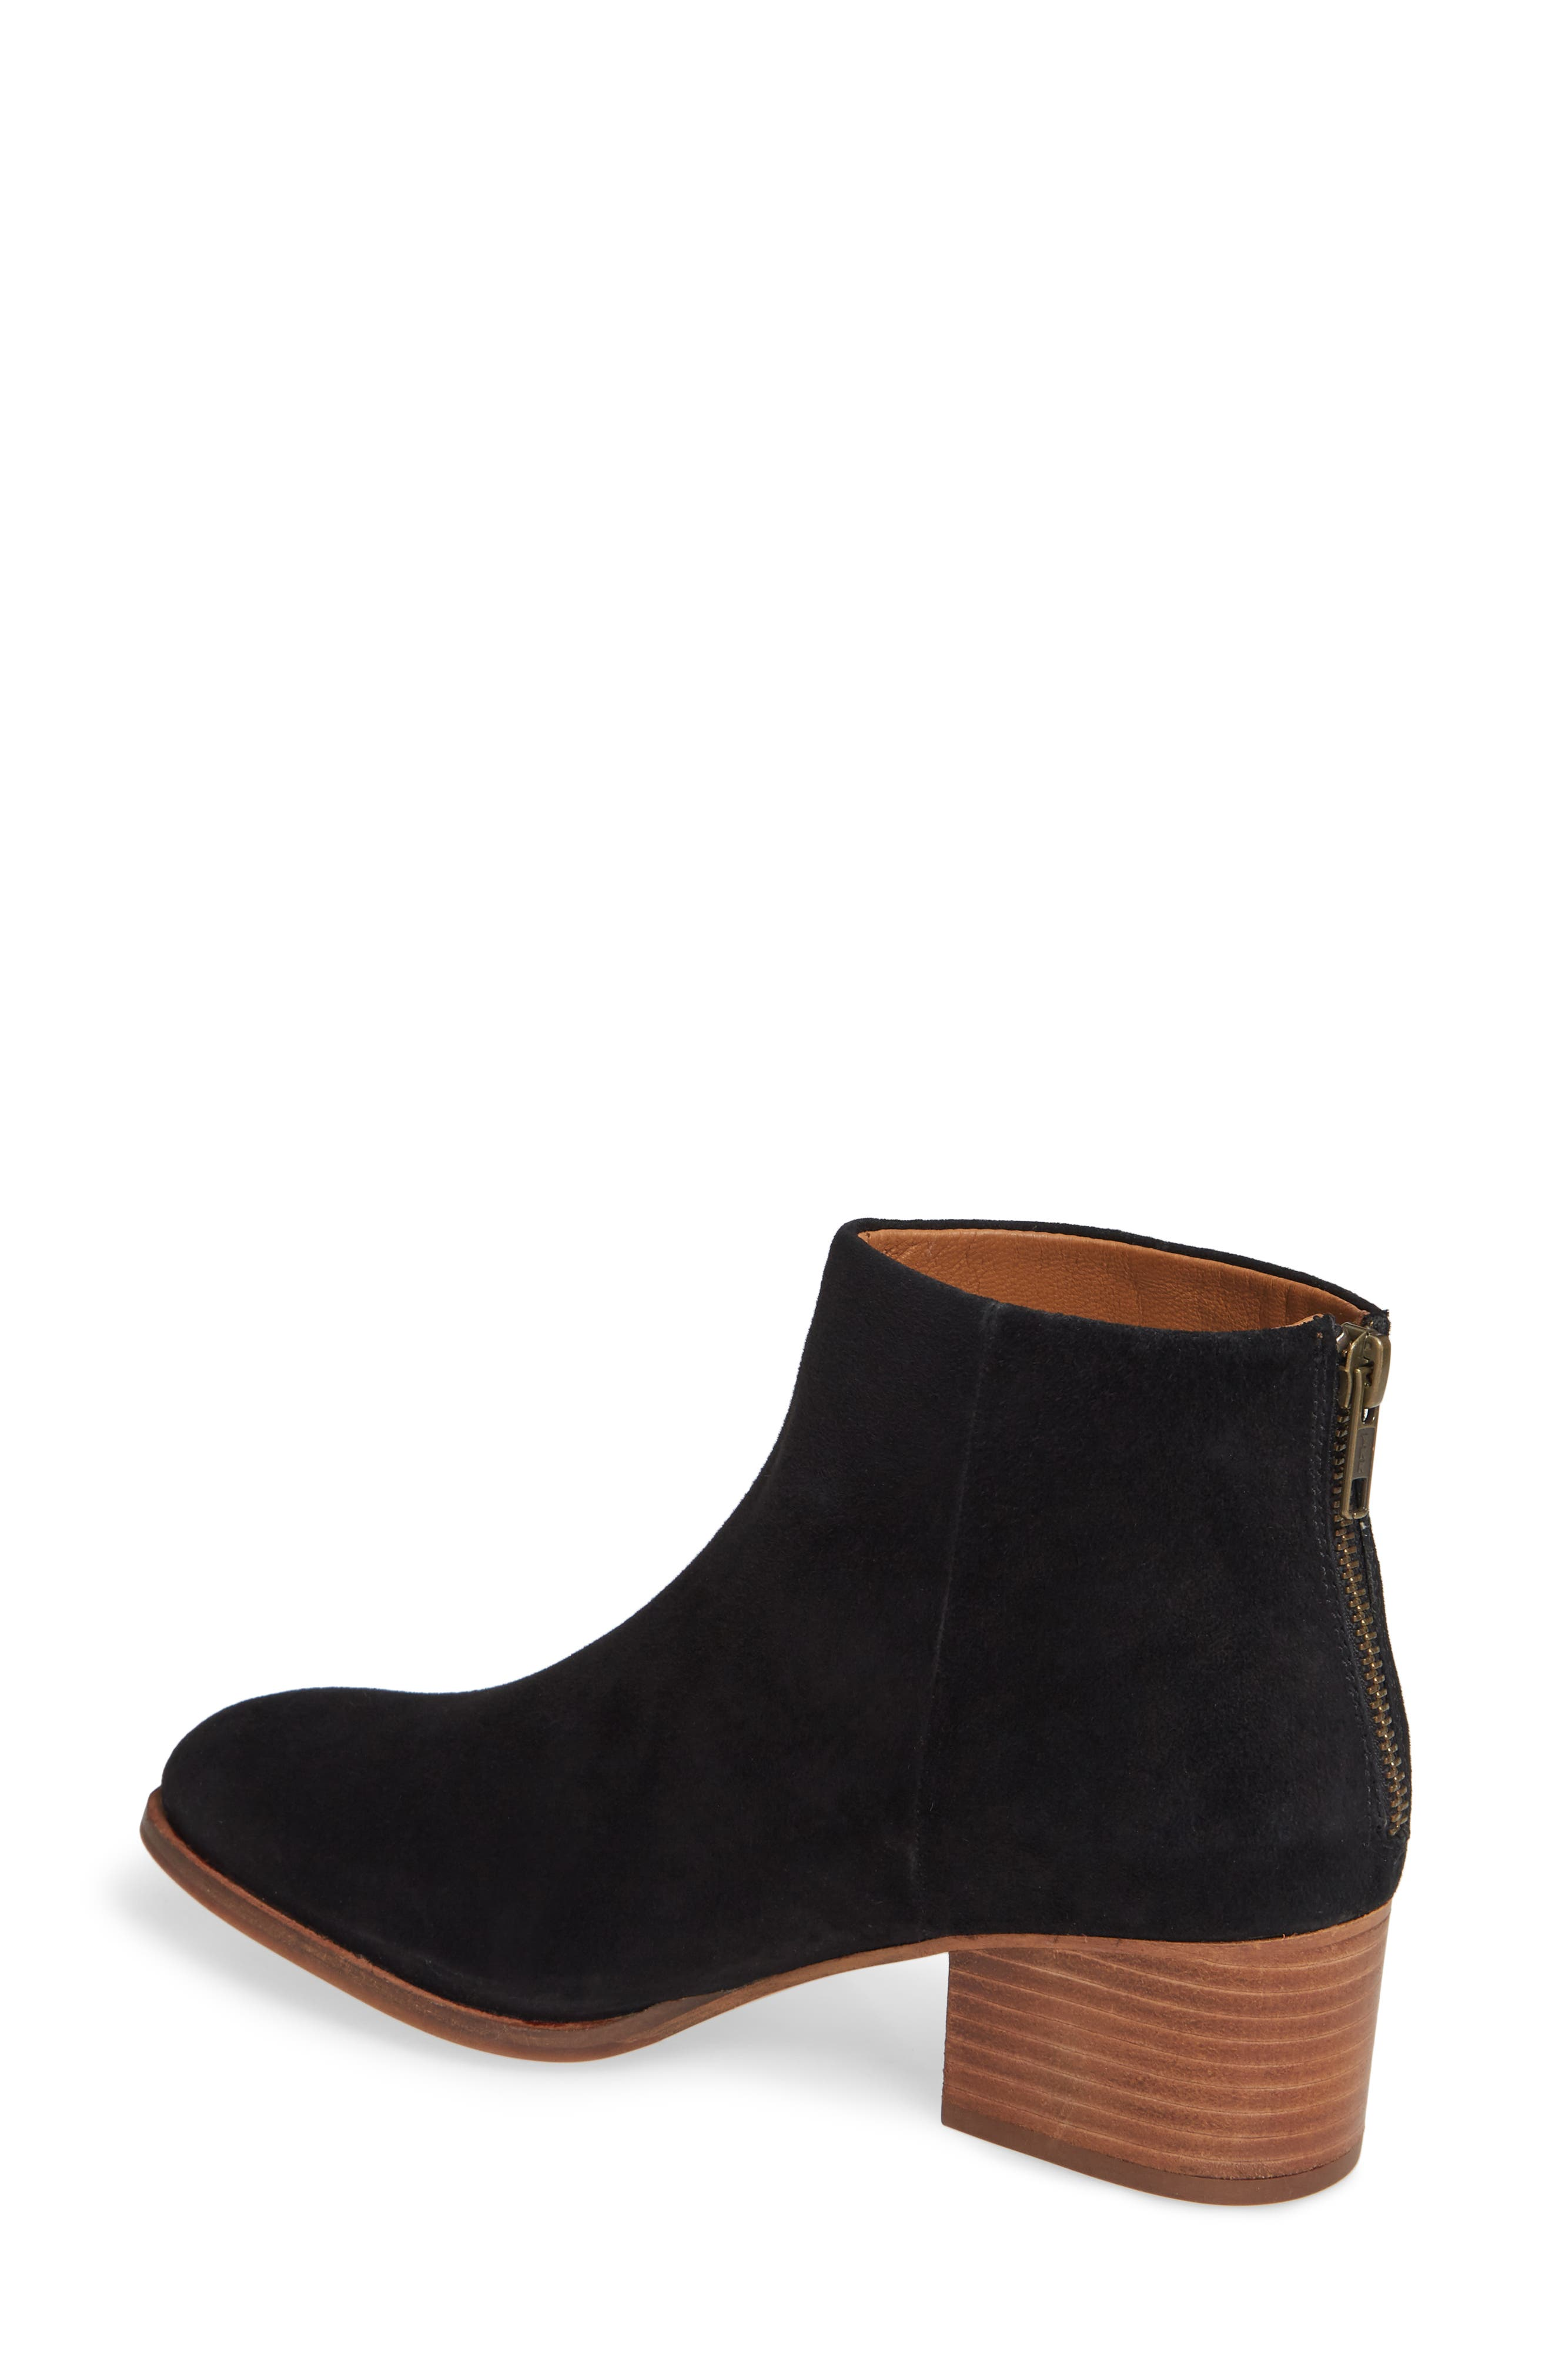 Floodplain Block Heel Bootie,                             Alternate thumbnail 2, color,                             BLACK SUEDE